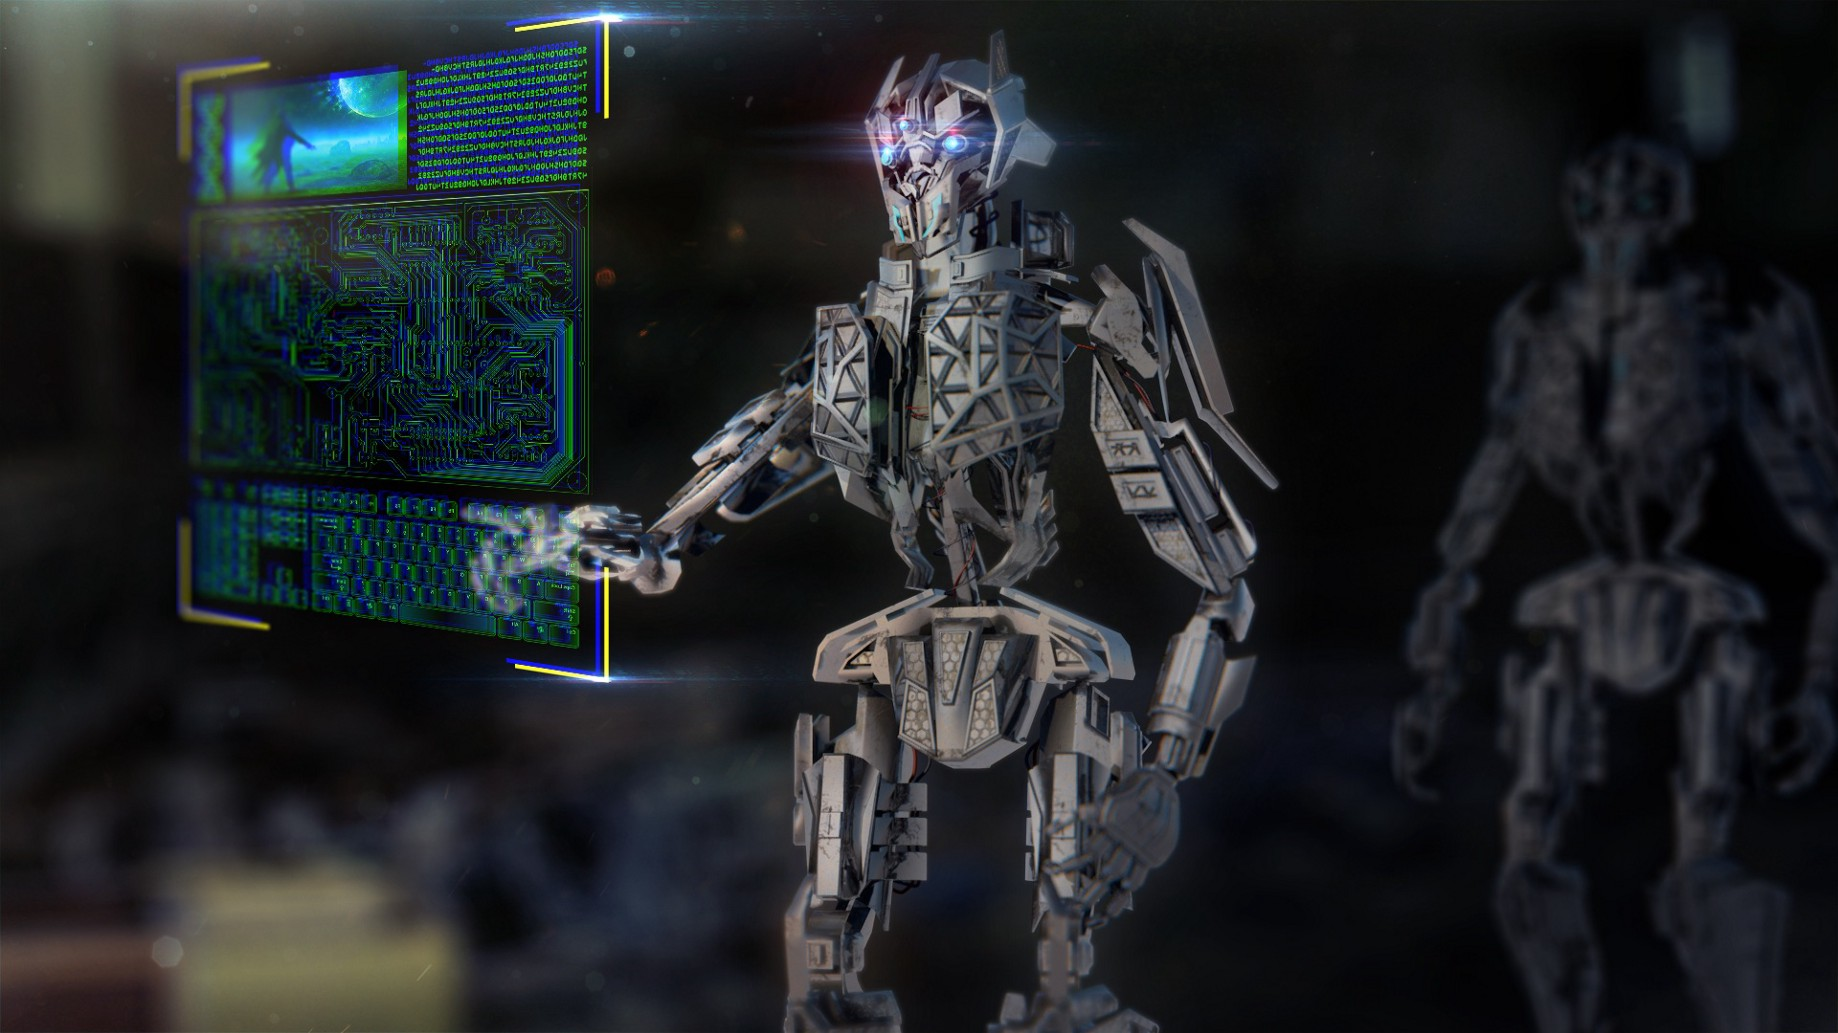 What is AI? Should we fear it? - Becoming Human: Artificial